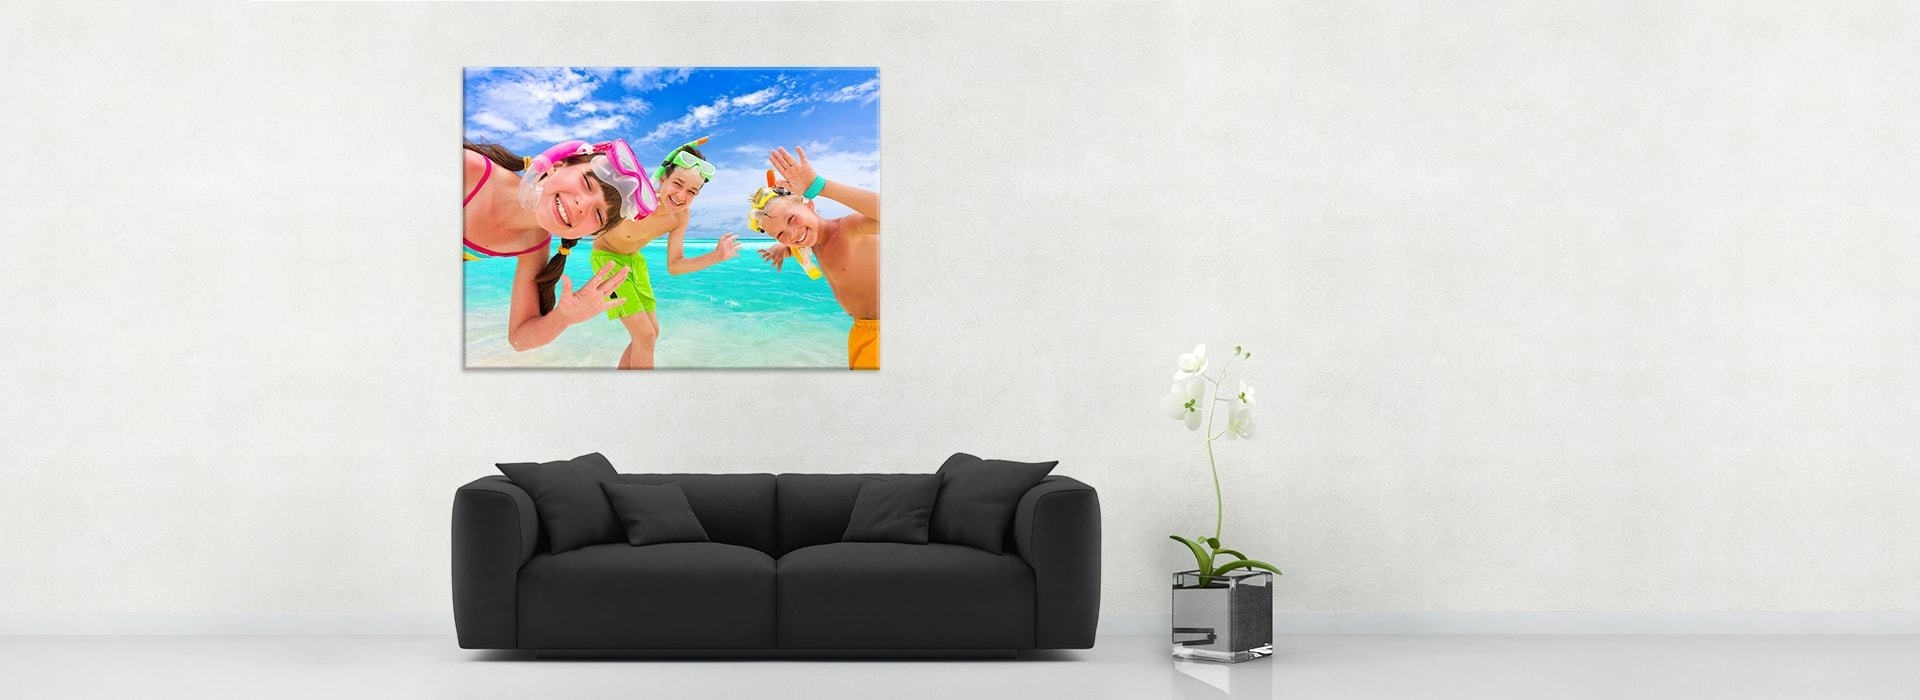 Newest Canvas Wall Art Of Philippines Intended For Canvas Prints (View 7 of 15)